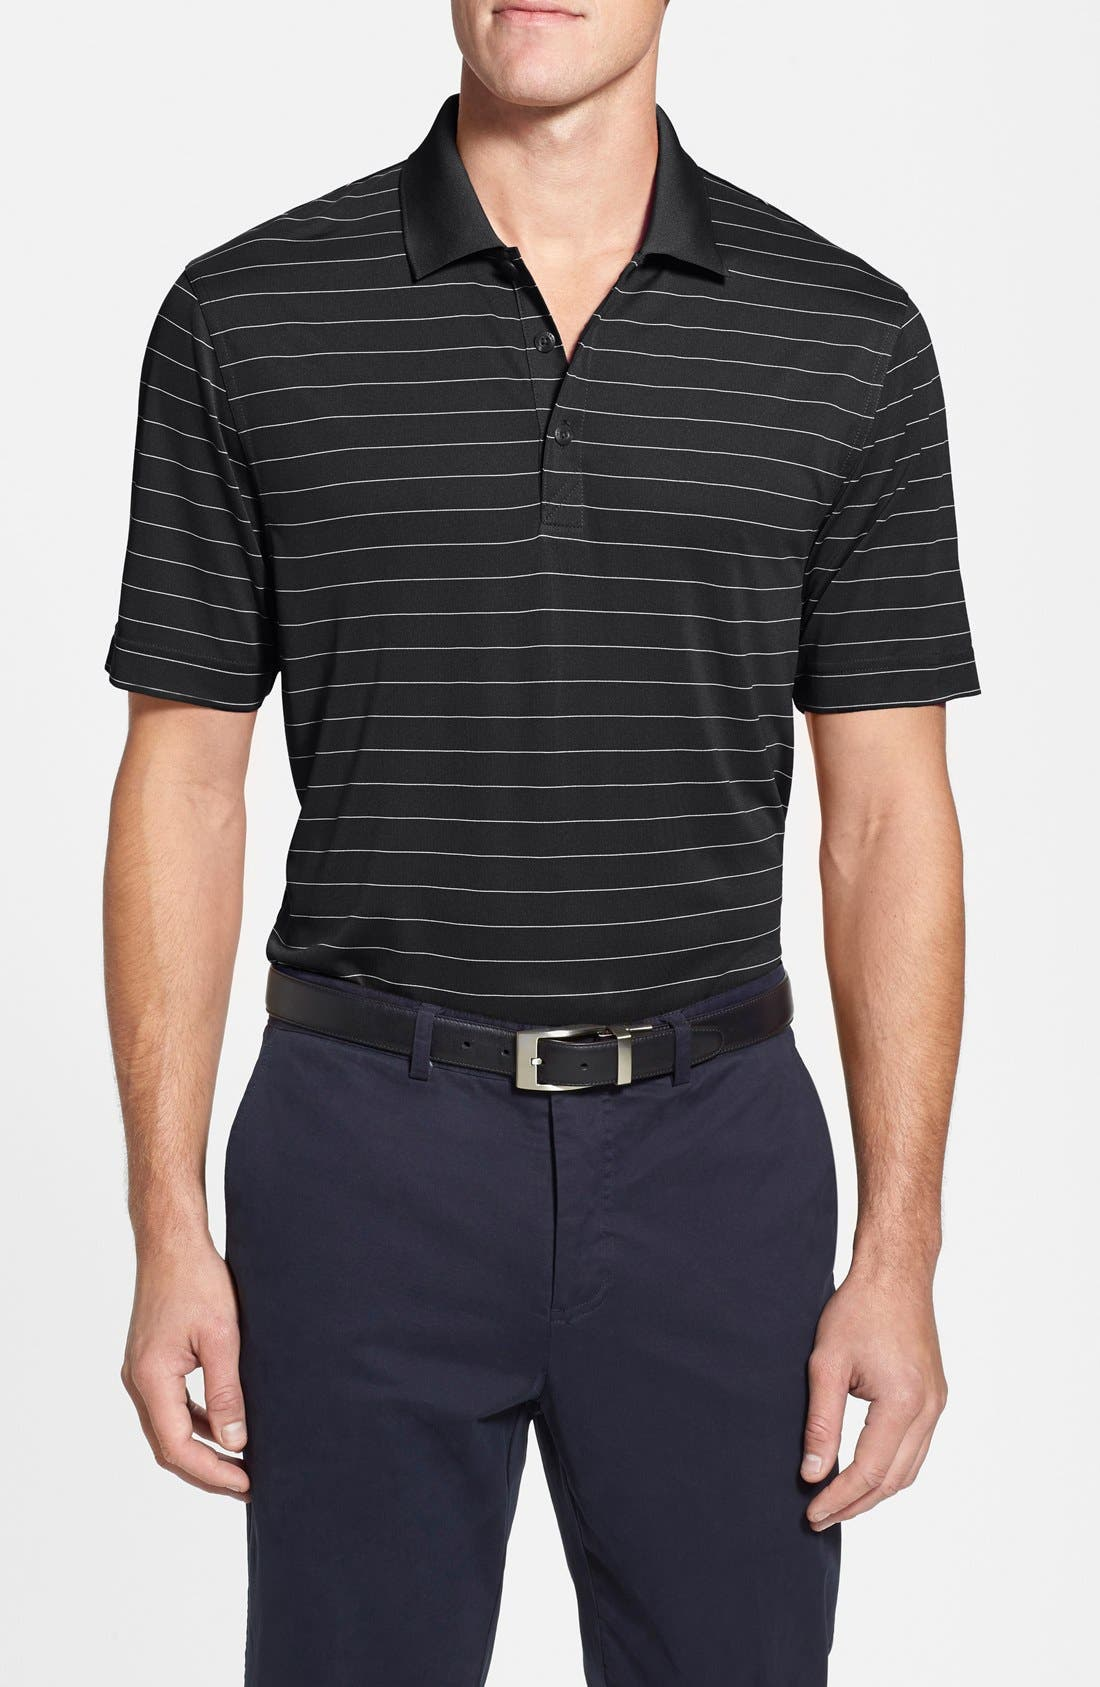 CUTTER & BUCK 'Franklin' Stripe DryTec® Polo